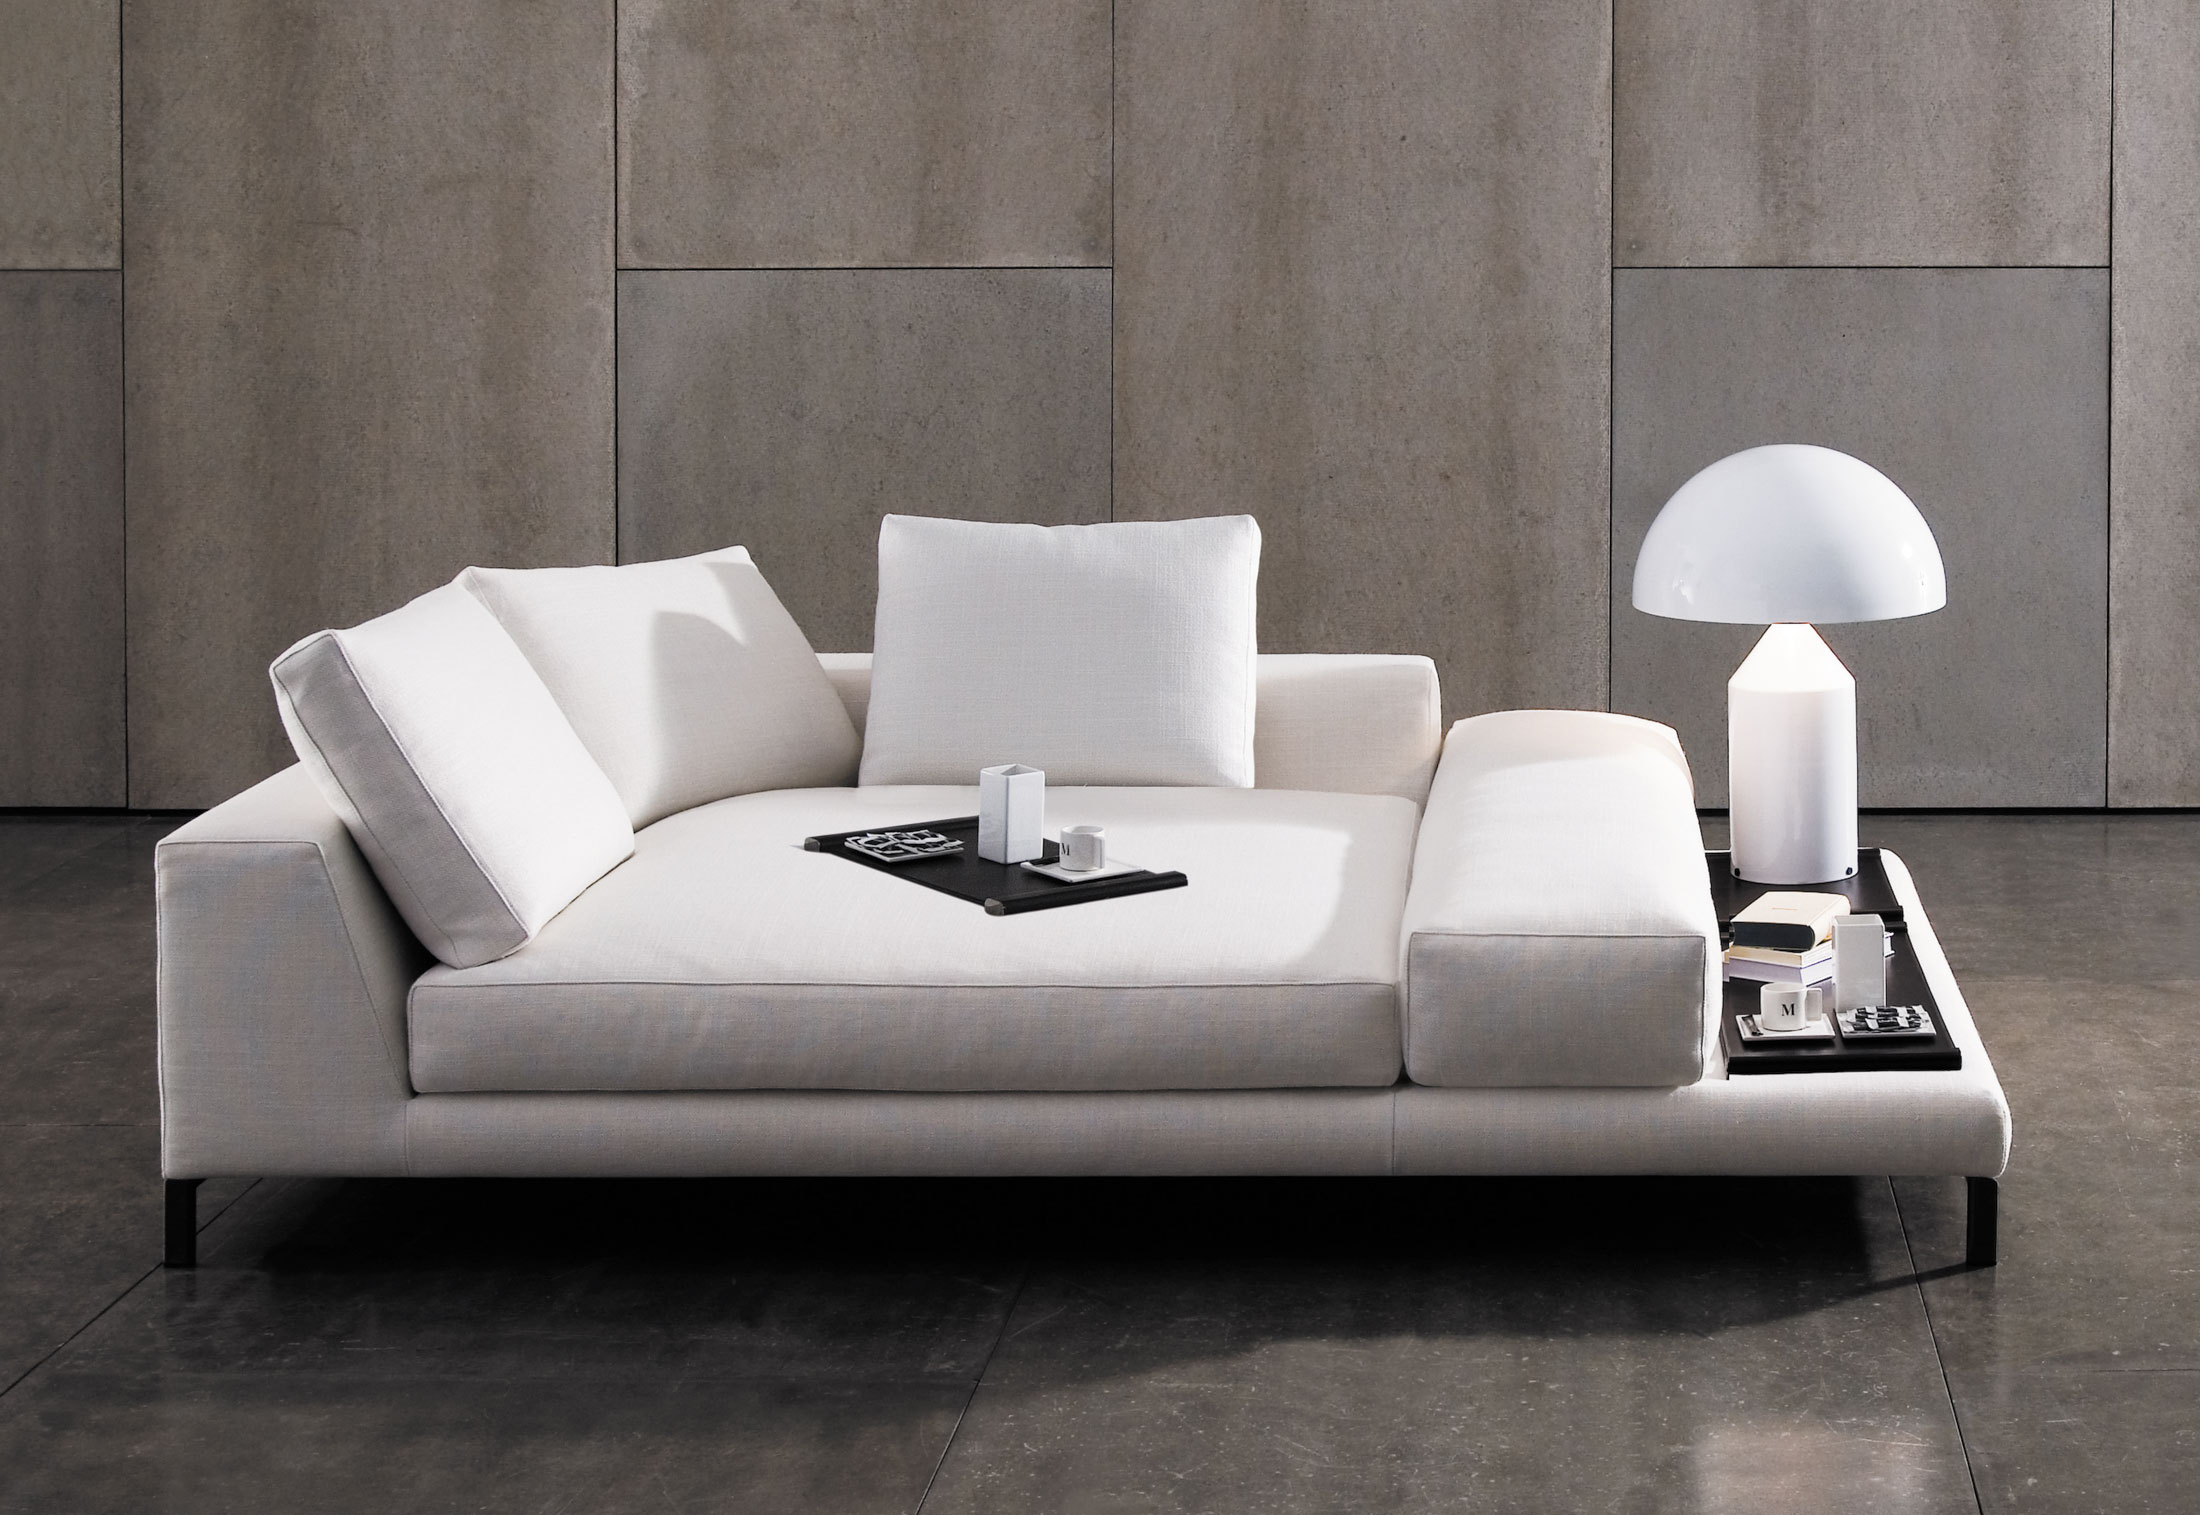 Hamilton Islands By Minotti Stylepark